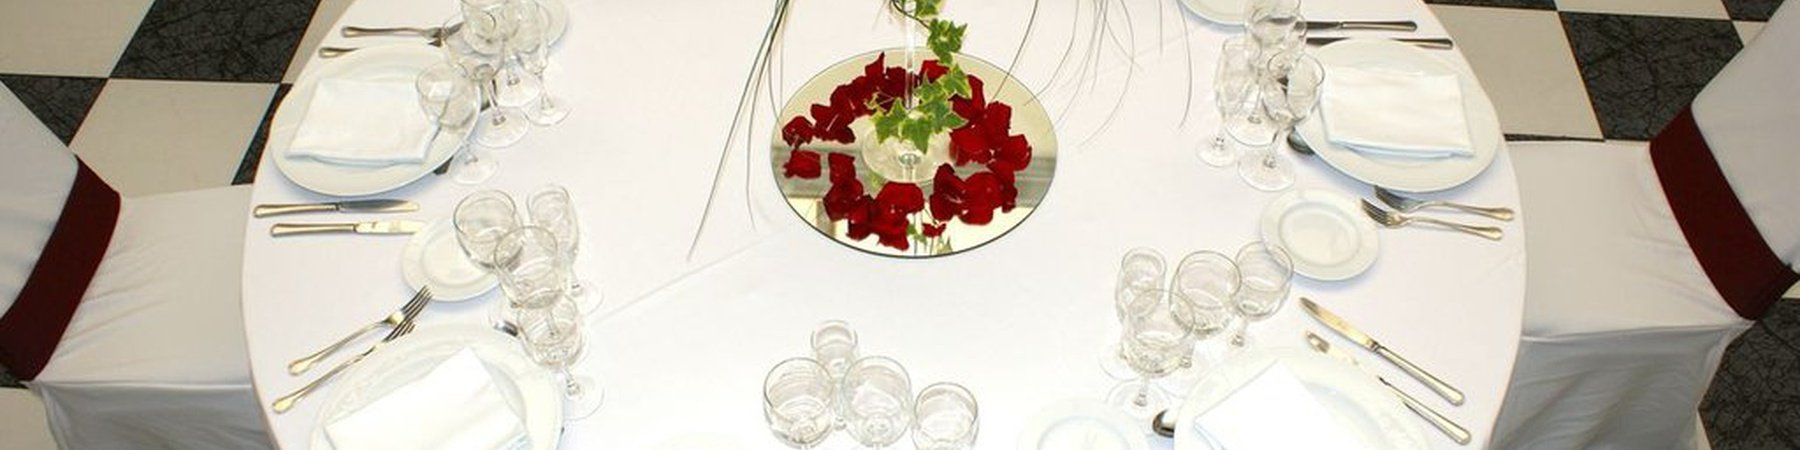 Catering - Sercotel Alfonso XIII Hotel